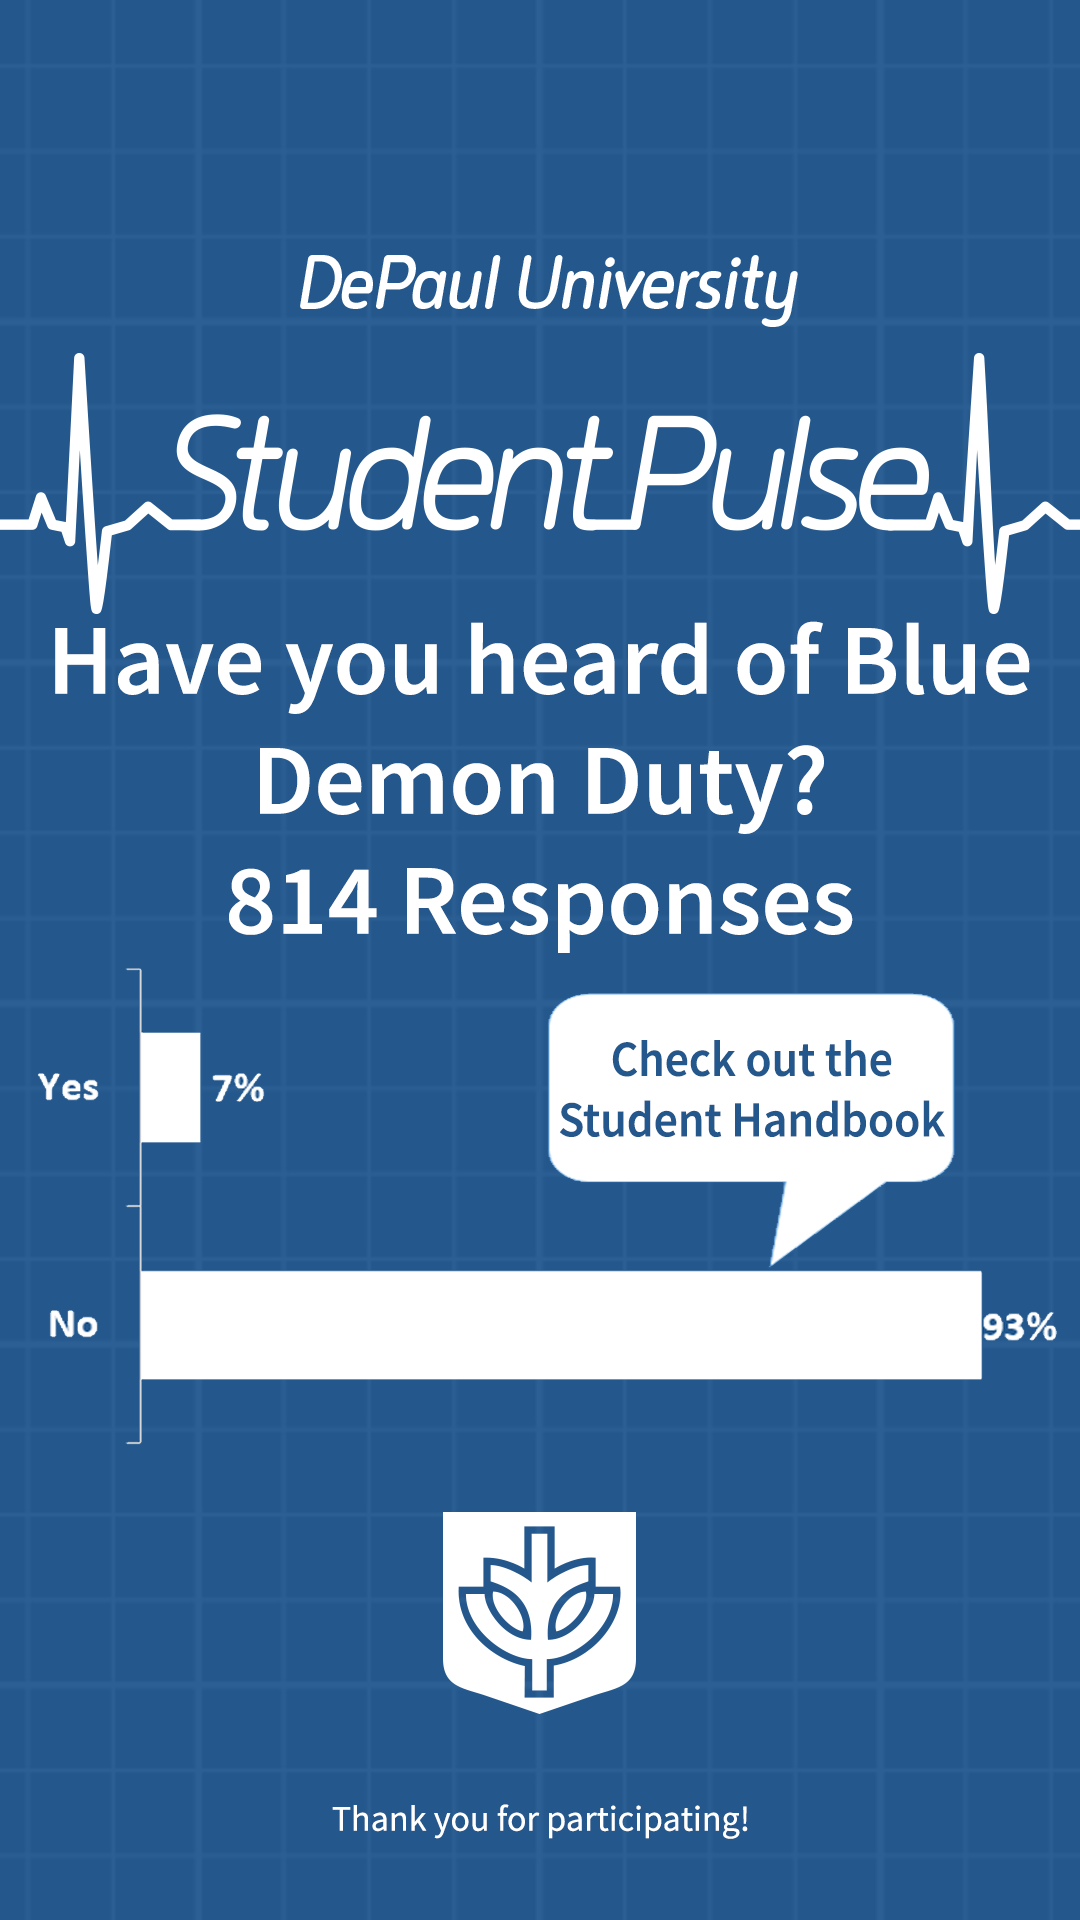 Have you heard of Blue Demon Duty?